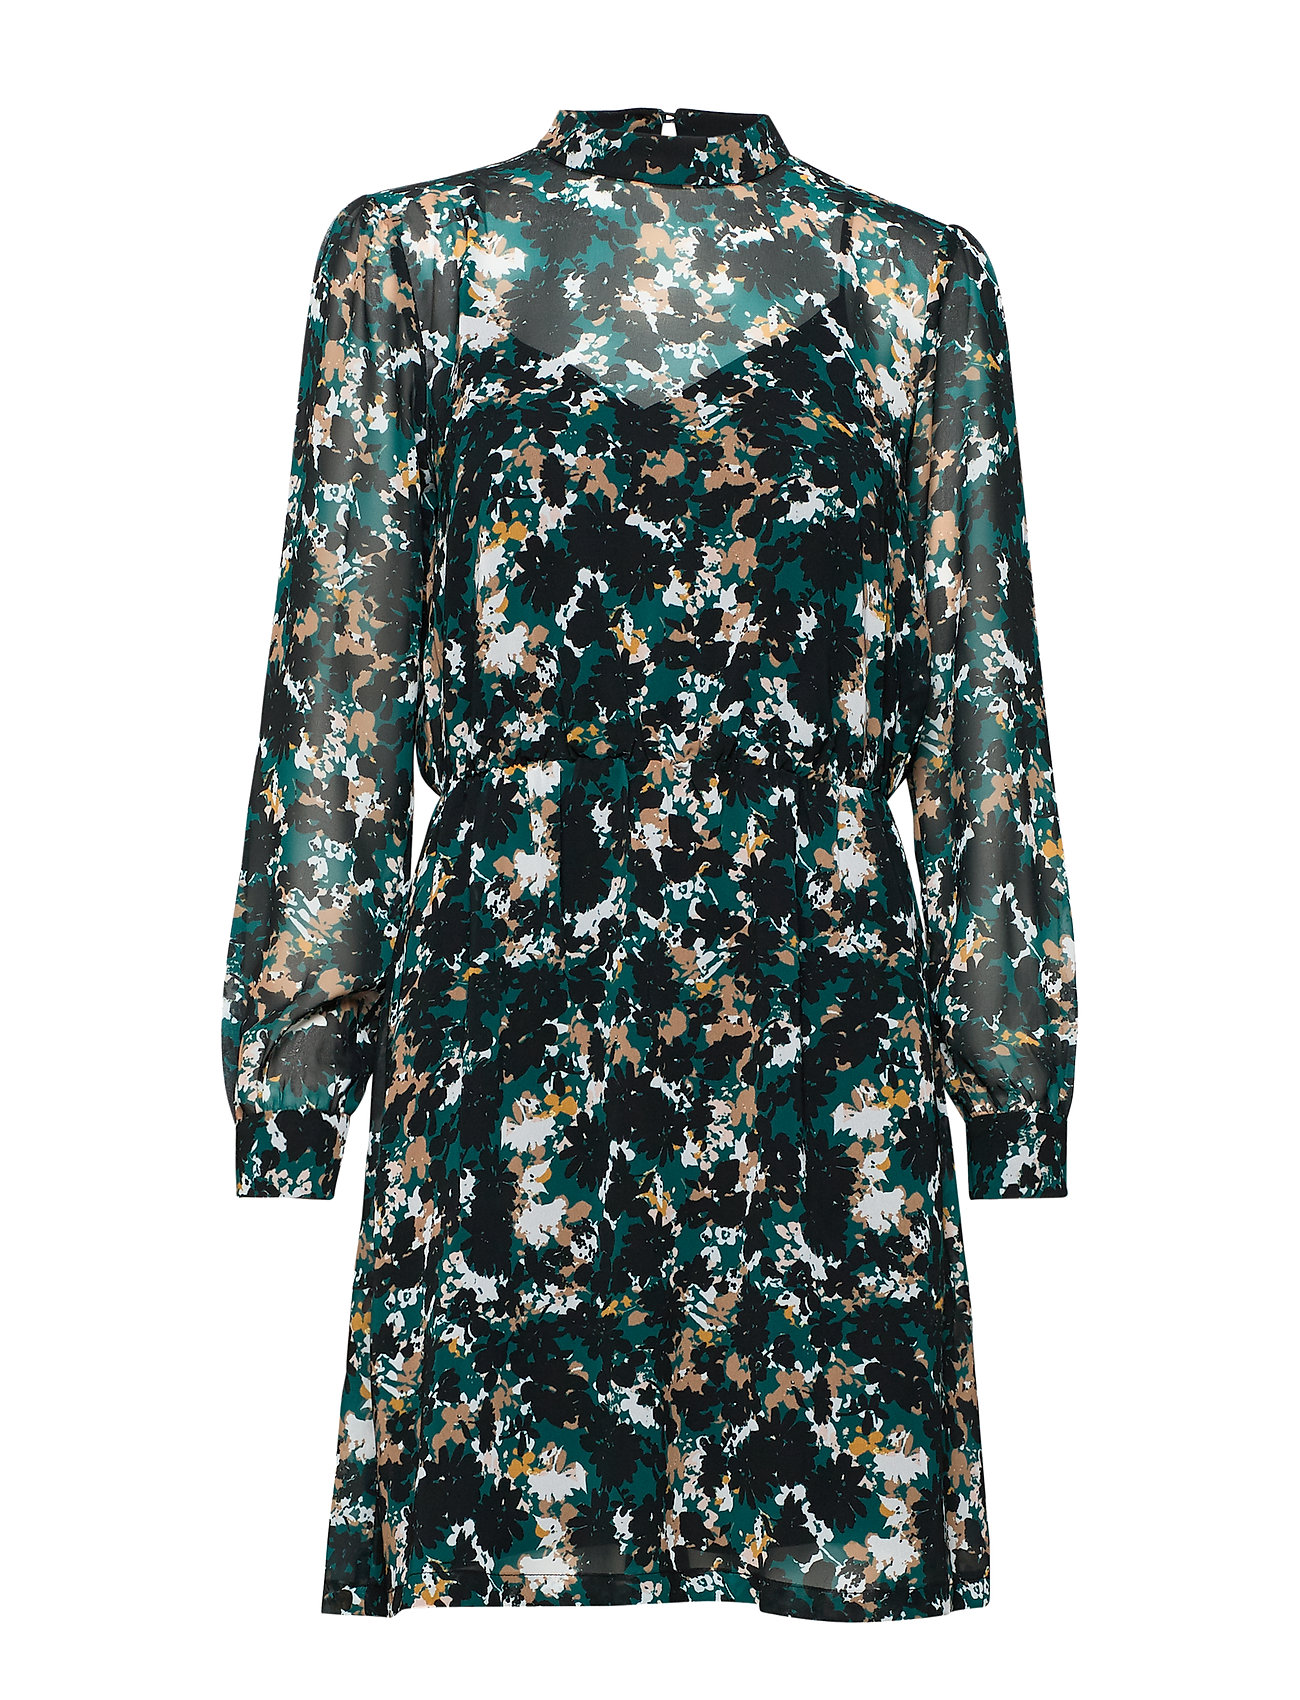 Bruuns Bazaar Botanic Lucinda Dress - BLACK/DEEP GREEN ARTWORK